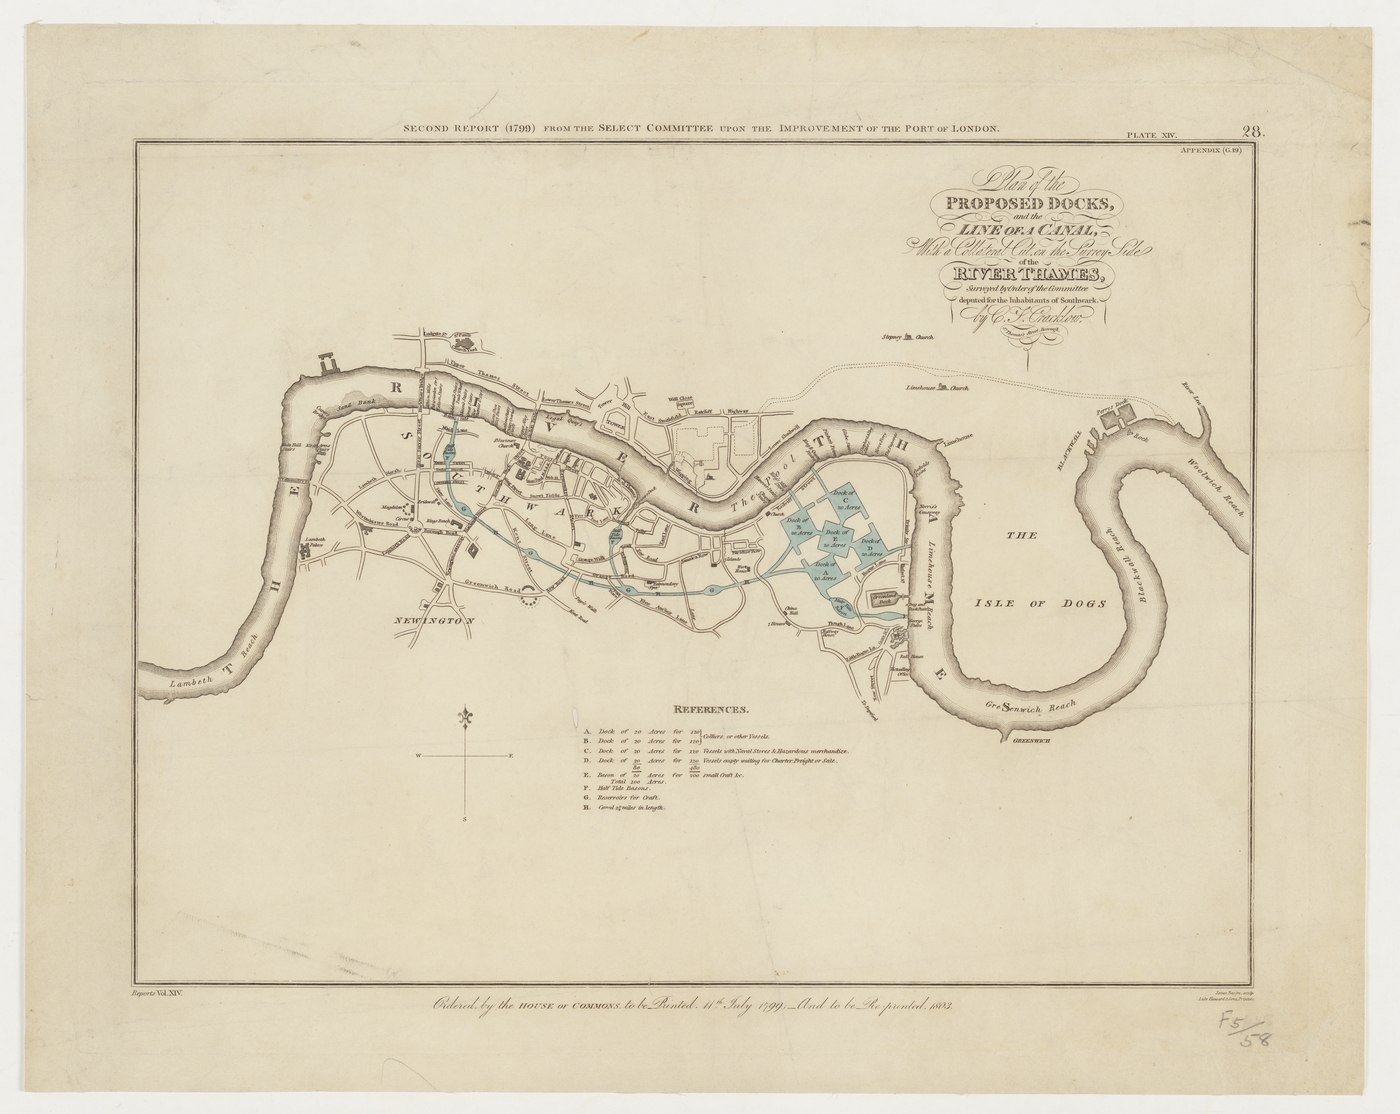 Plan of the proposed docks and the line of a canal with a collateral cut on the Surrey side of the River Thames, 1799 from the State Library of New South Wales